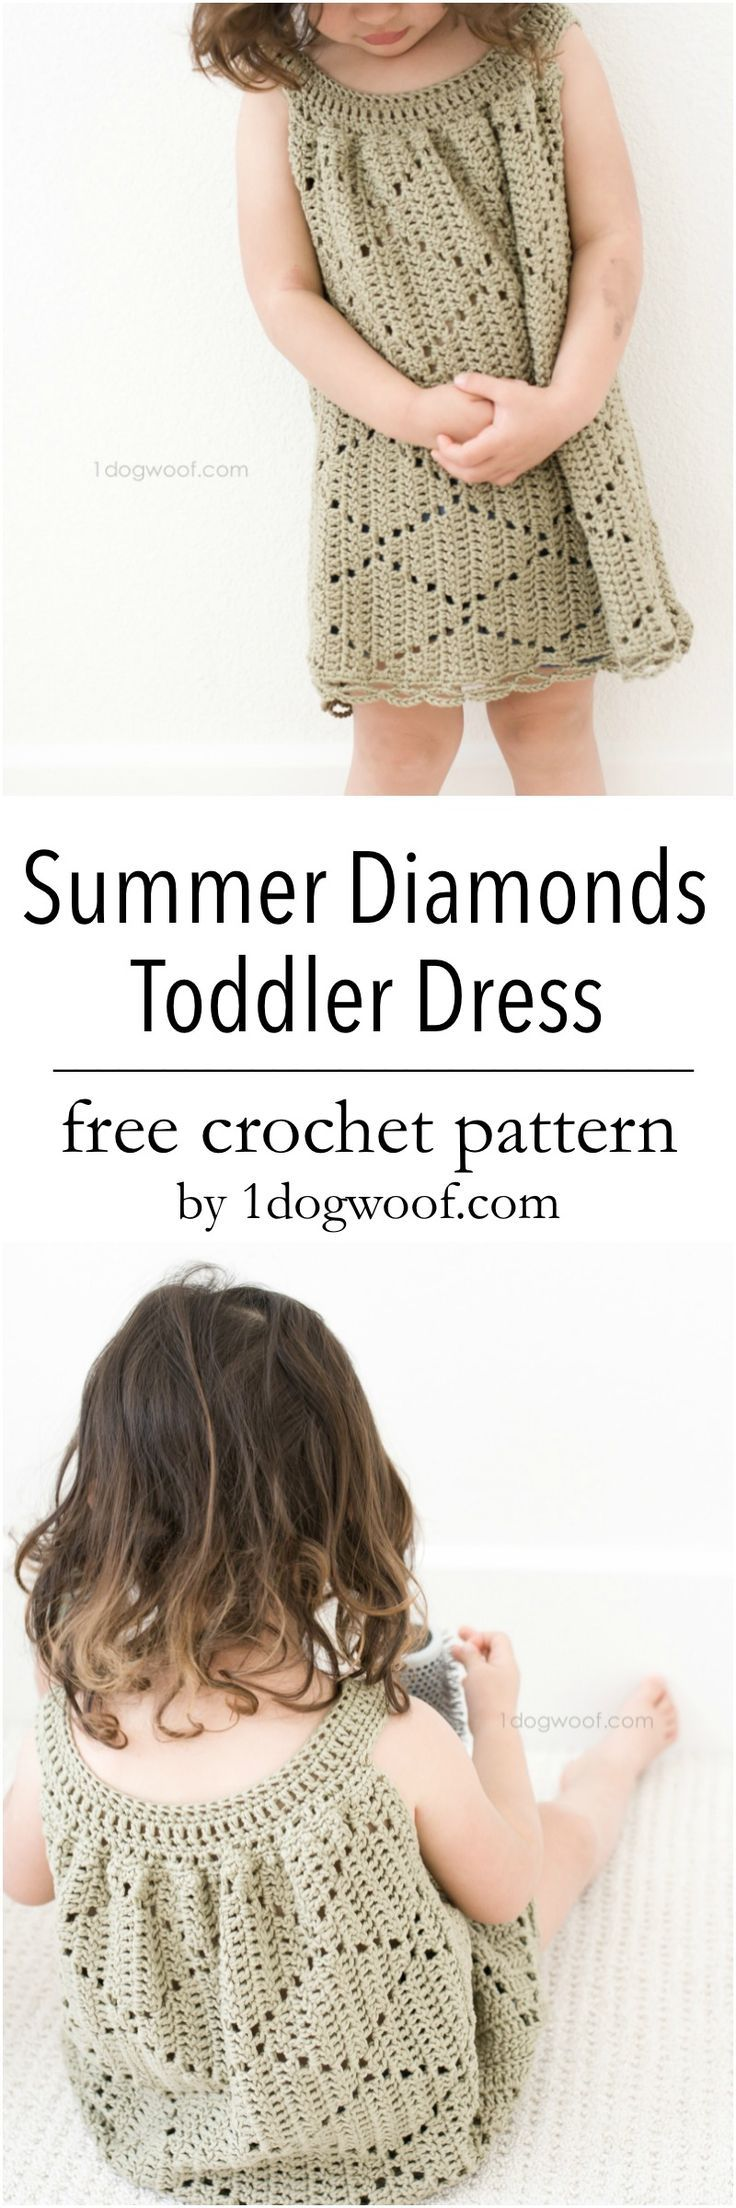 Summer diamonds toddler dress free crochet crochet and patterns free crochet pattern to make an adorable dress for a little girl features a fun bankloansurffo Image collections